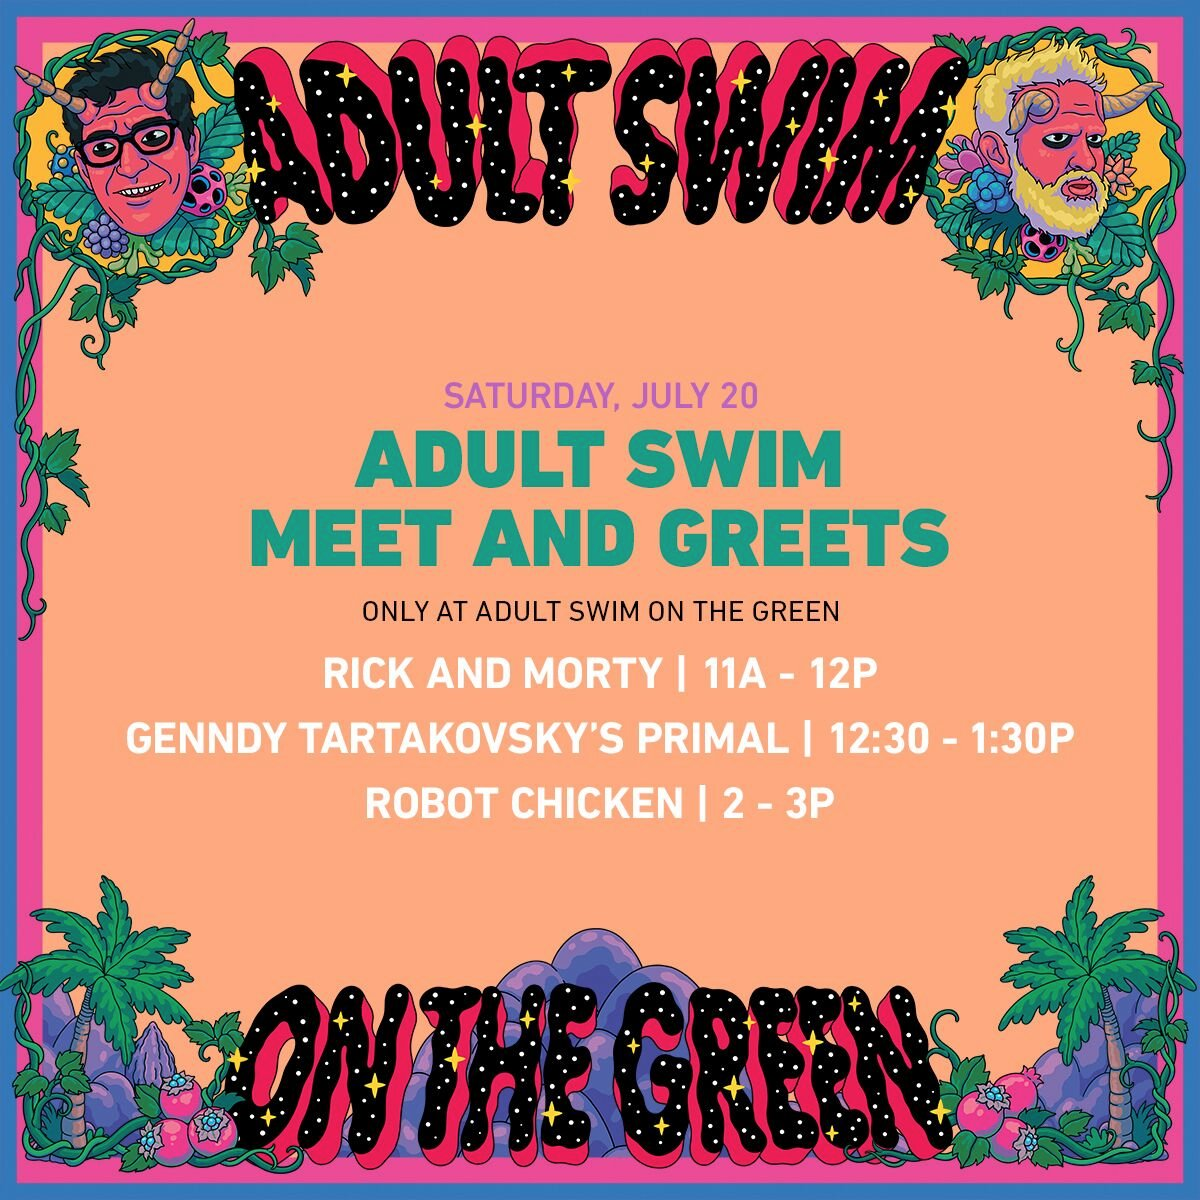 The final day has arrived! #AdultSwim on the Green opens at 12pm PST. The #Rickflector opens at 9:30am PST. Stream it all from home starting at 4pm PST. adultswim.com/streams #SDCC